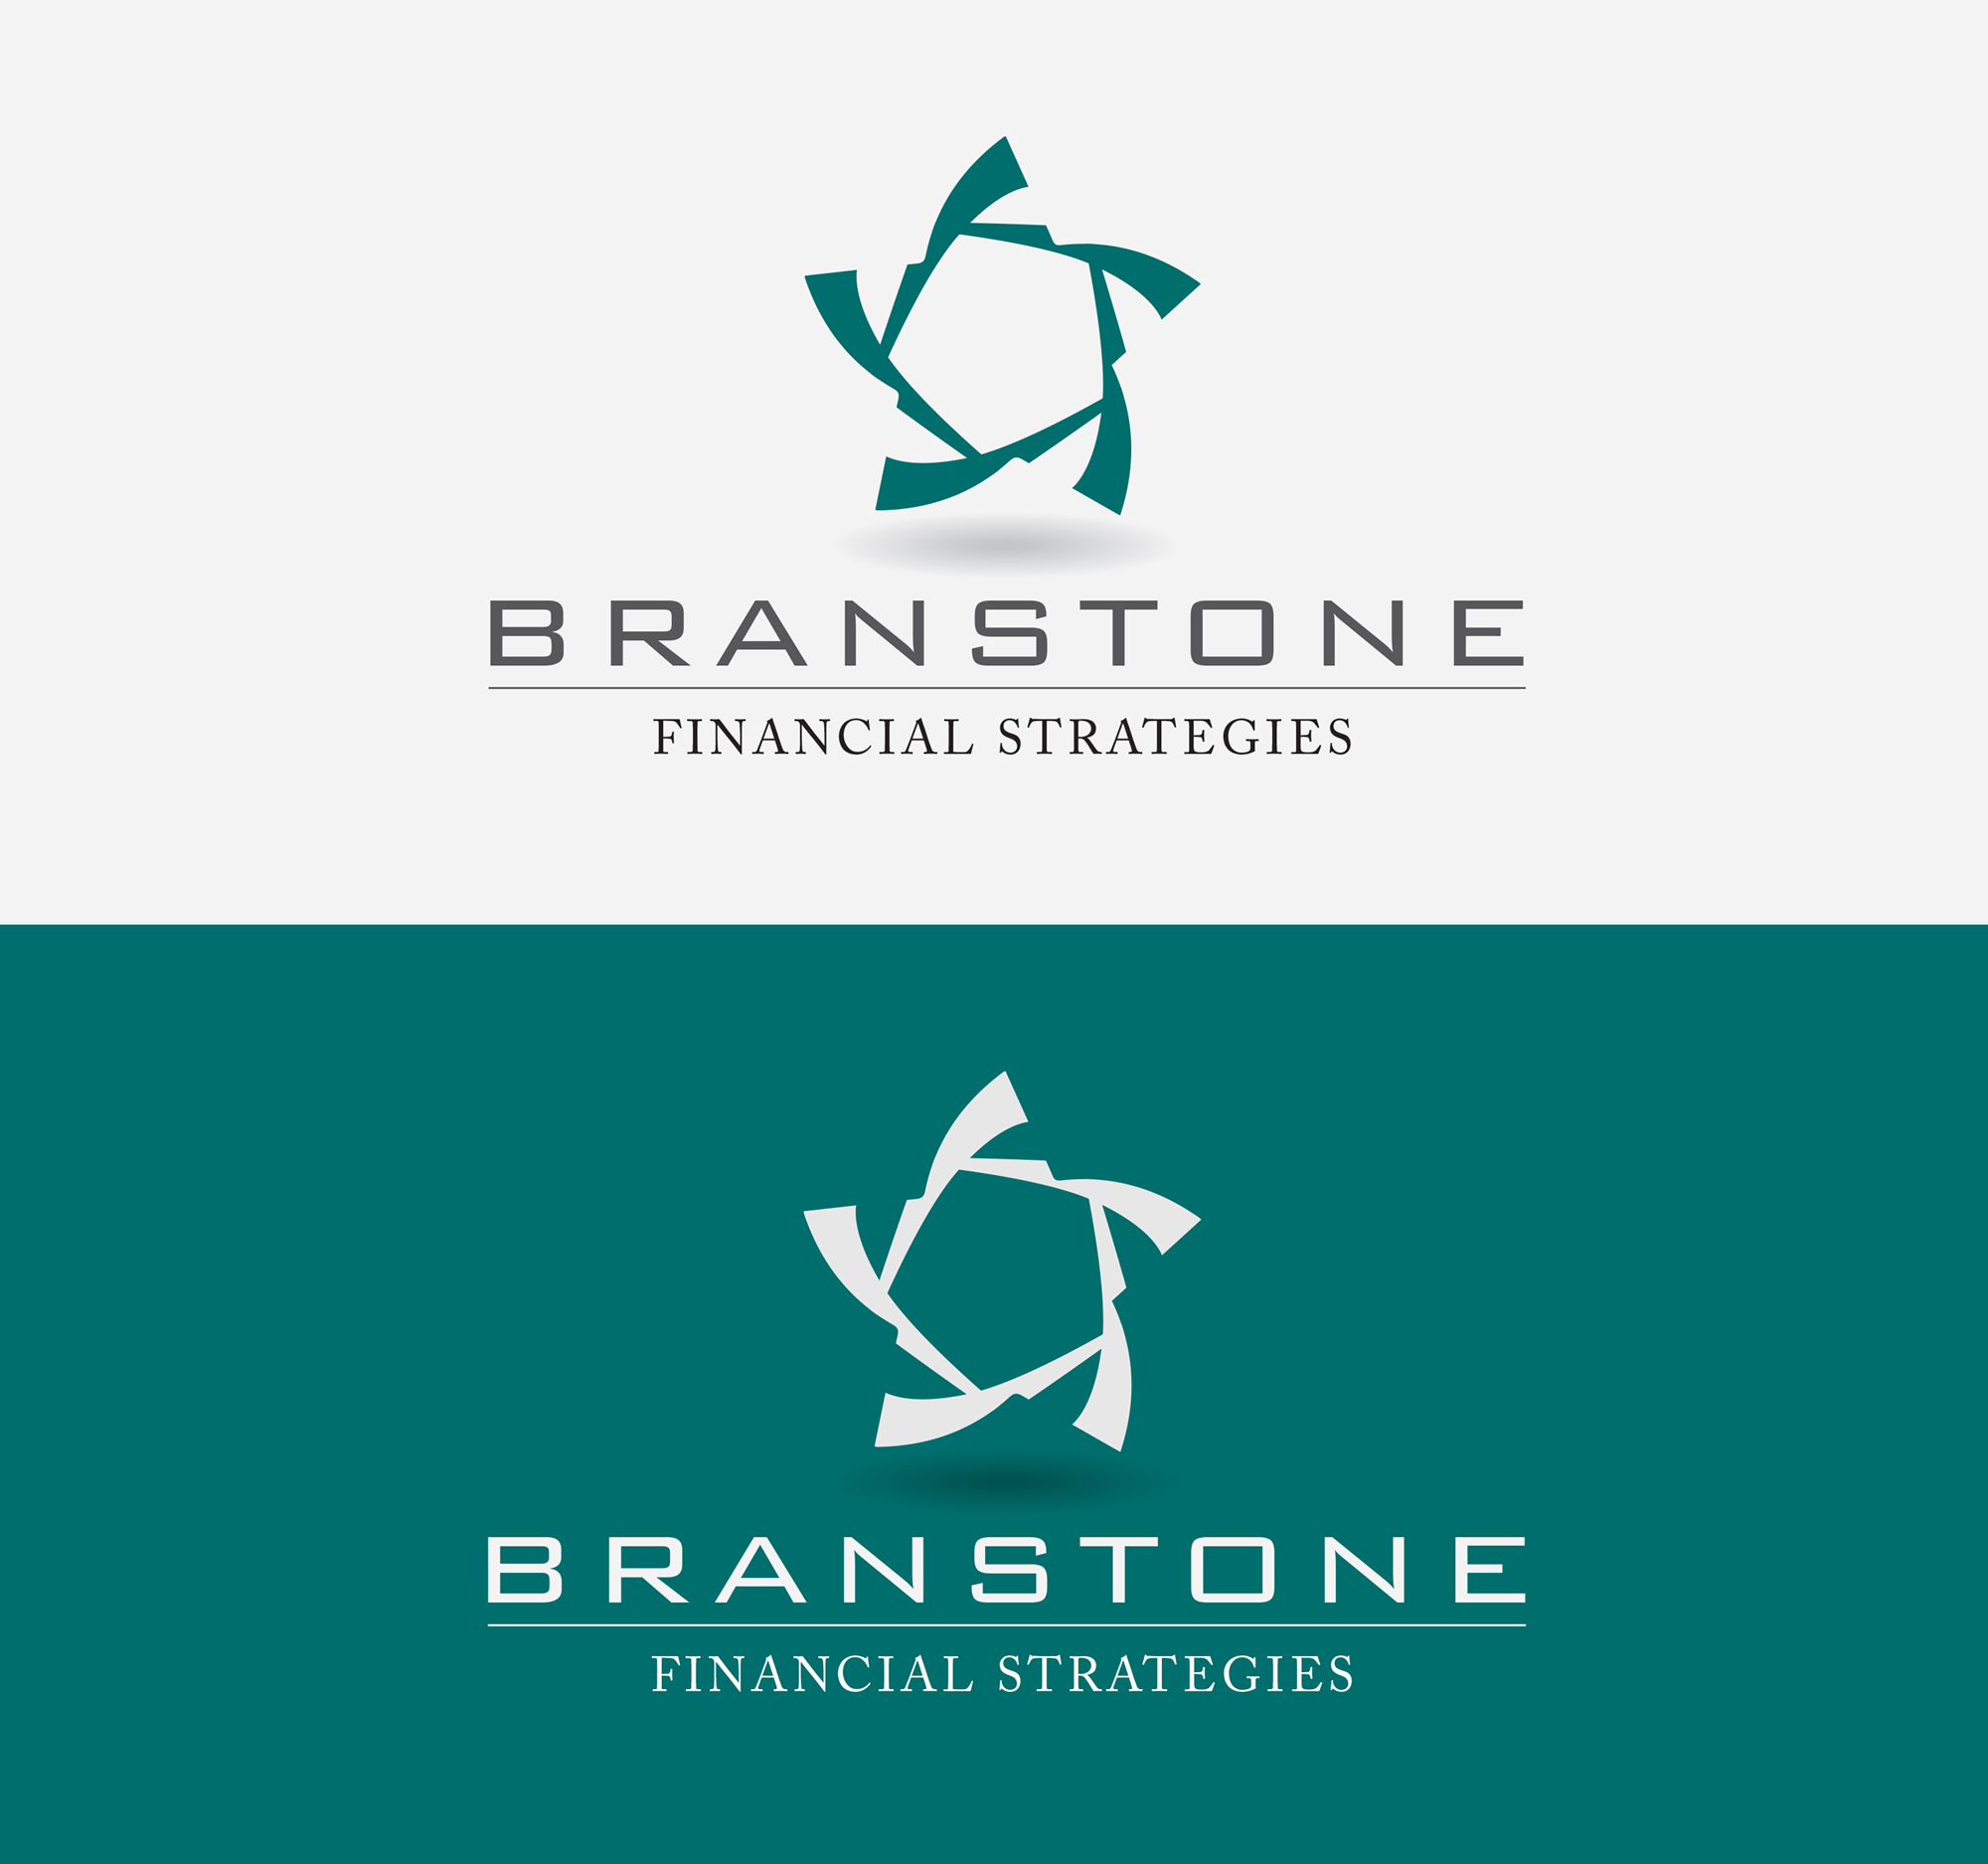 Logo Design by André Provedel Silva - Entry No. 313 in the Logo Design Contest Inspiring Logo Design for Branstone Financial Strategies.